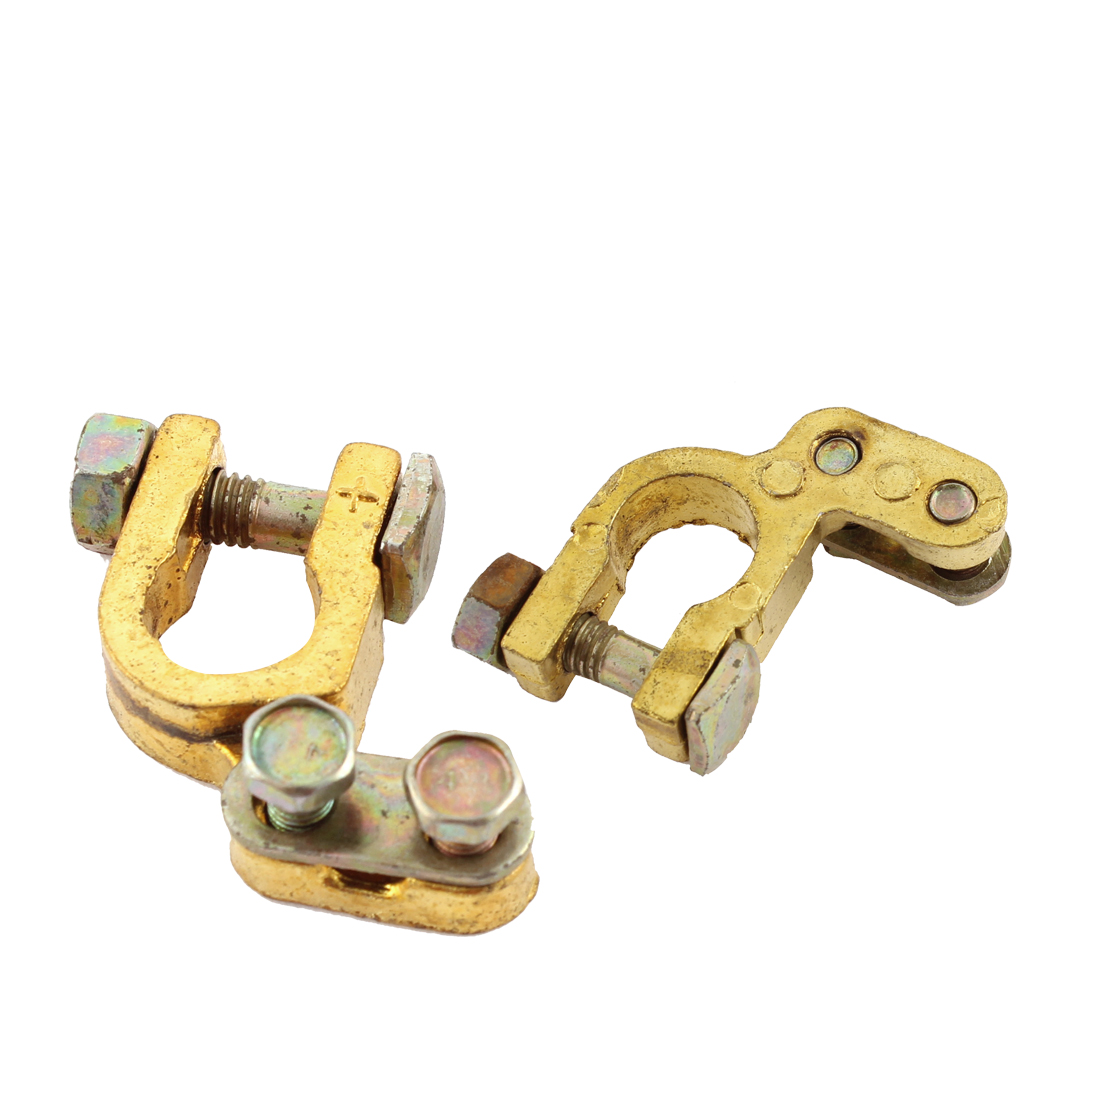 Metal Replacement Auto Car Battery Terminal Clamp Connector Gold Tone